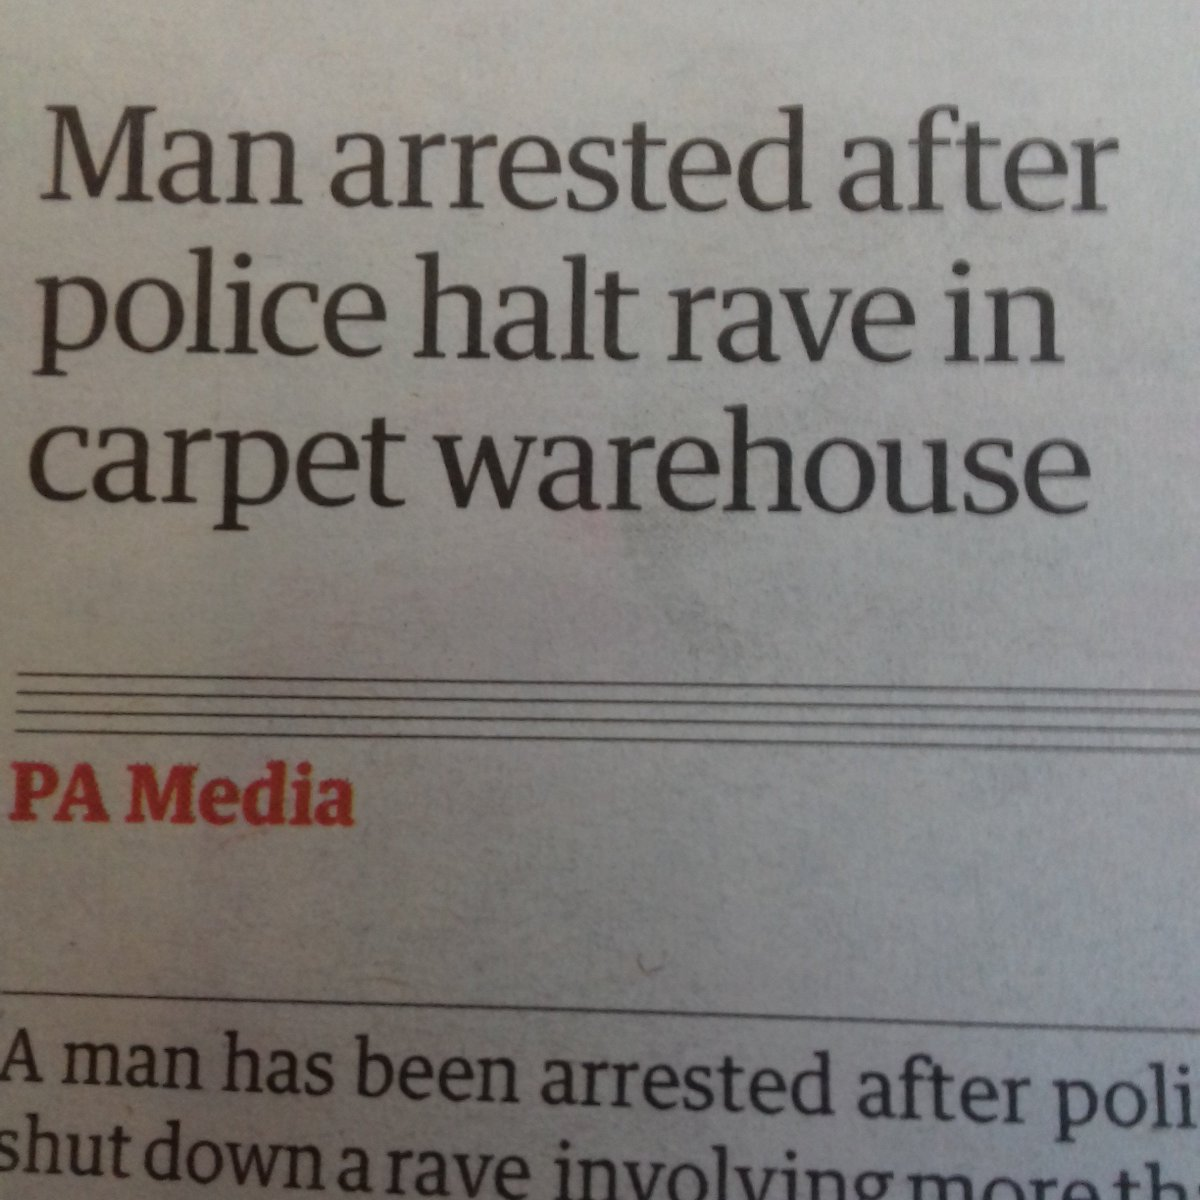 They were taking illegal rugs.